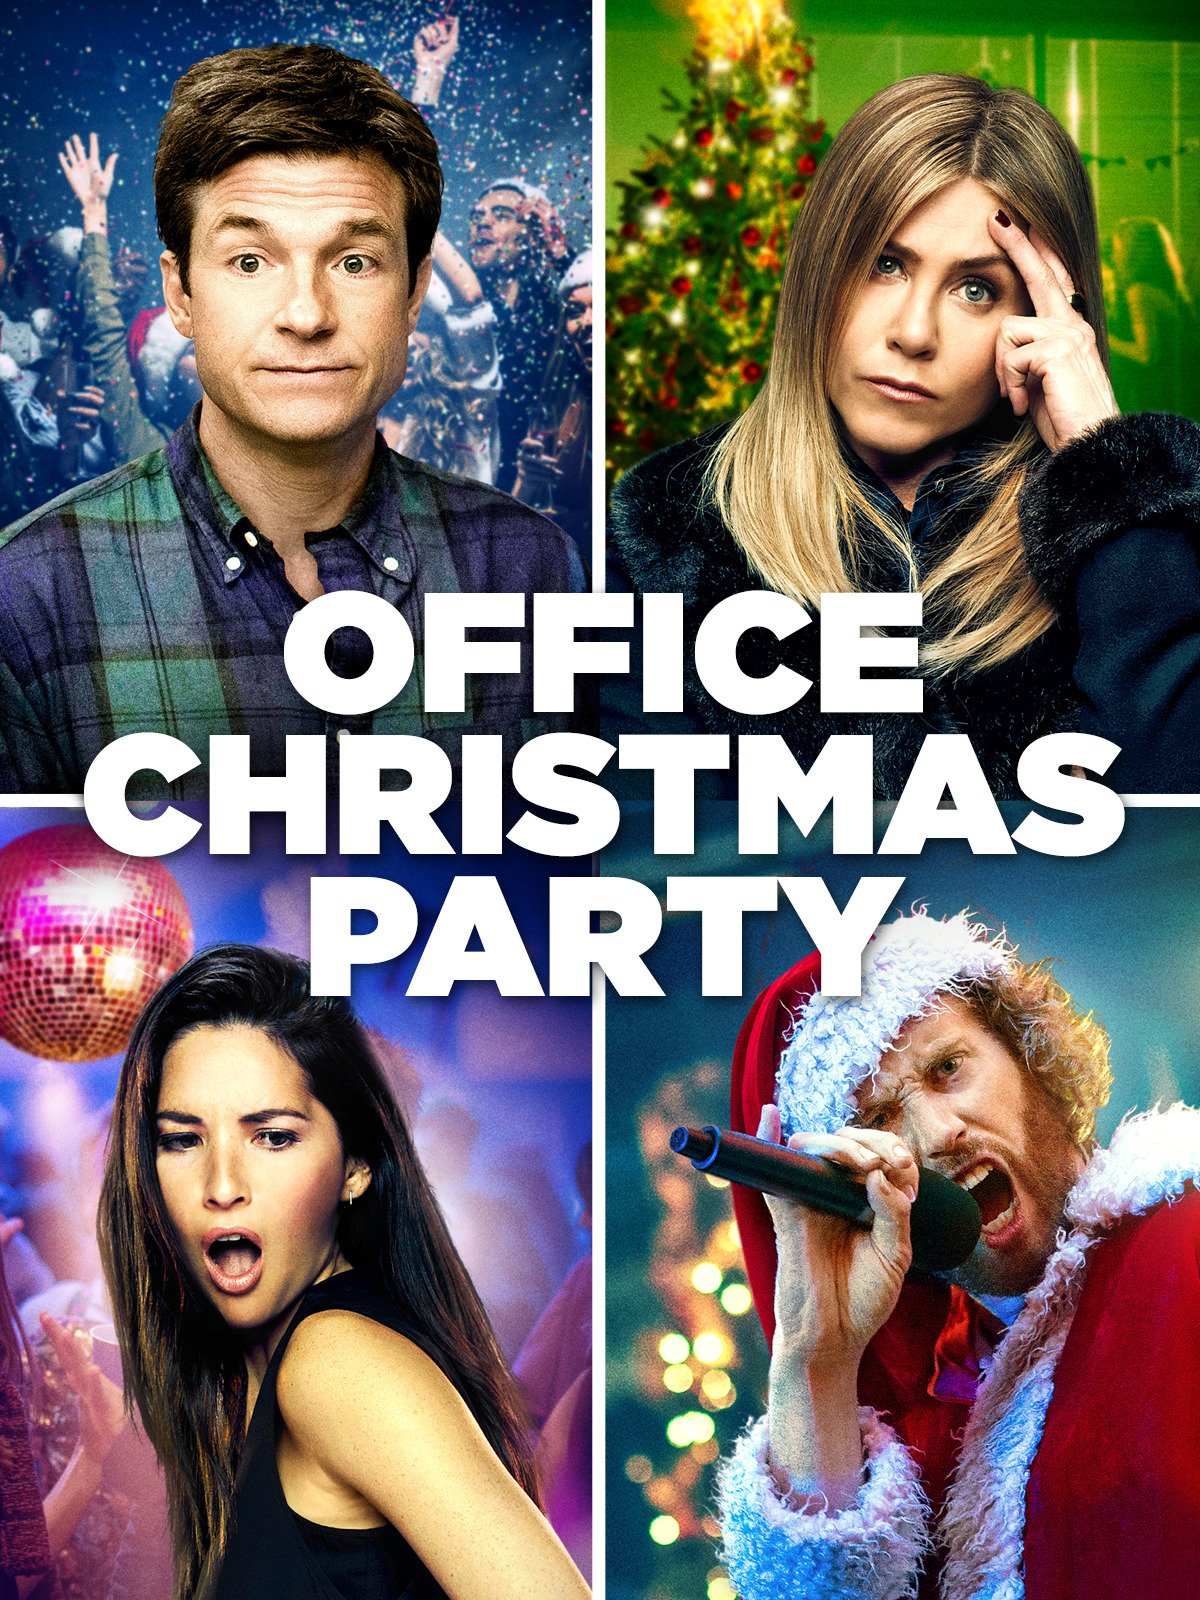 Amazon.co.uk: Watch Office Christmas Party | Prime Video